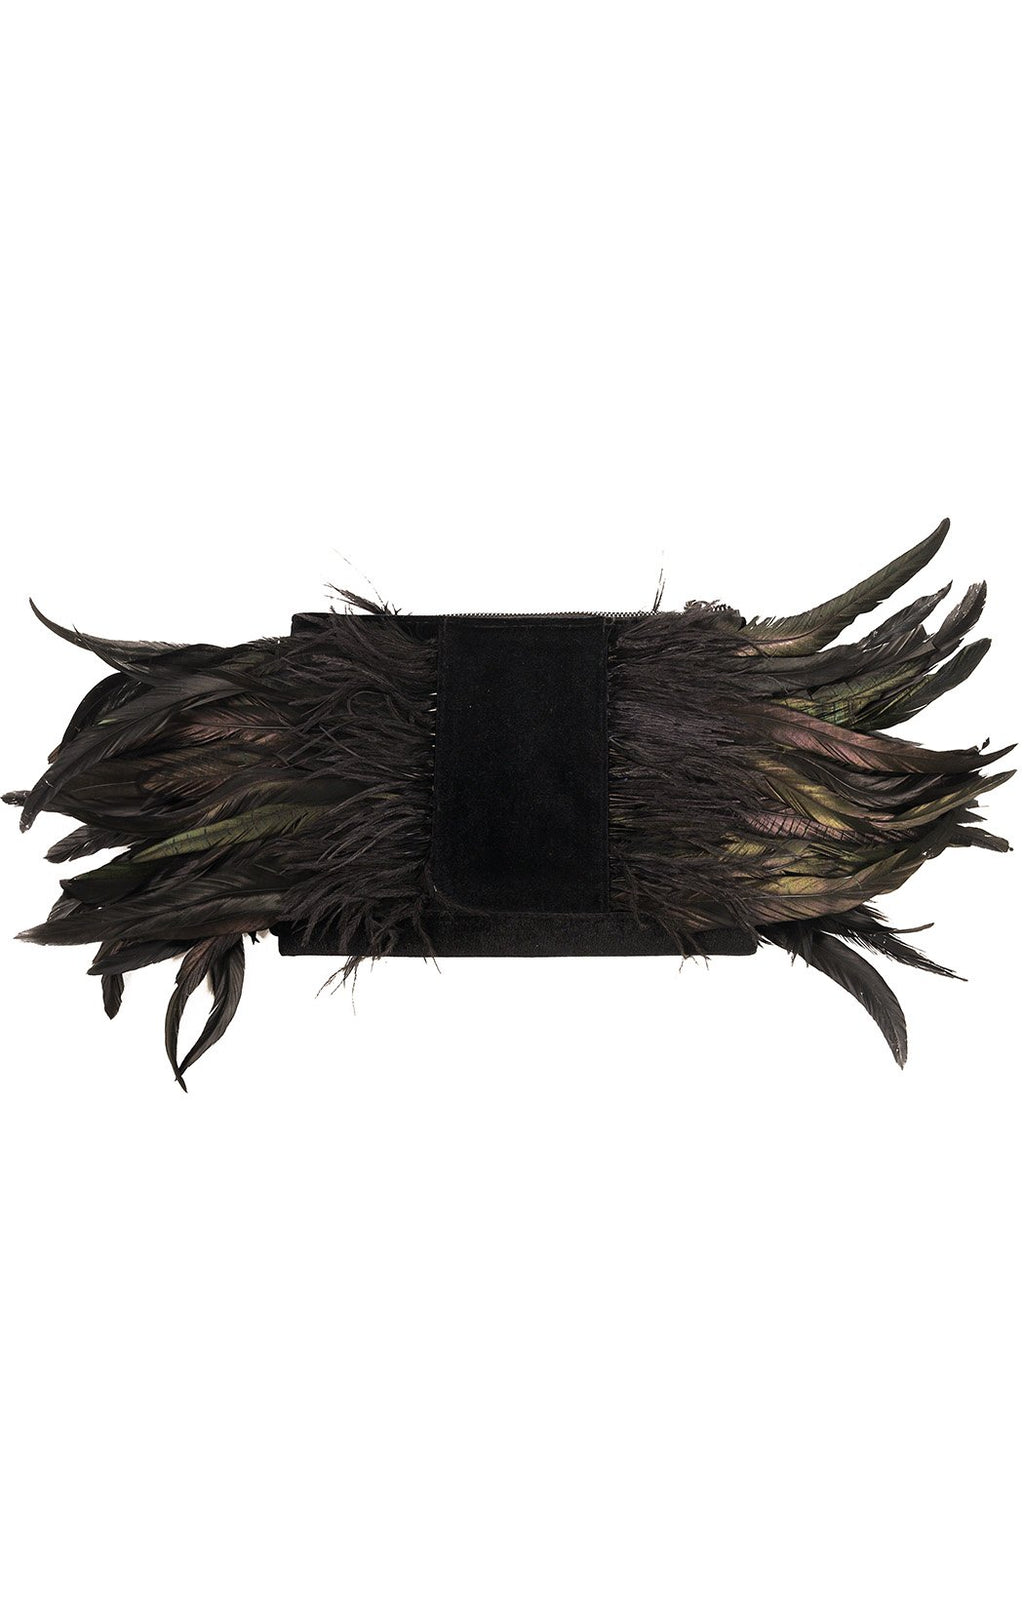 "Front view of NO NAME Clutch Size: 11"" W x 8"" H x 1"" D (with 9"" of feathers on each side)"